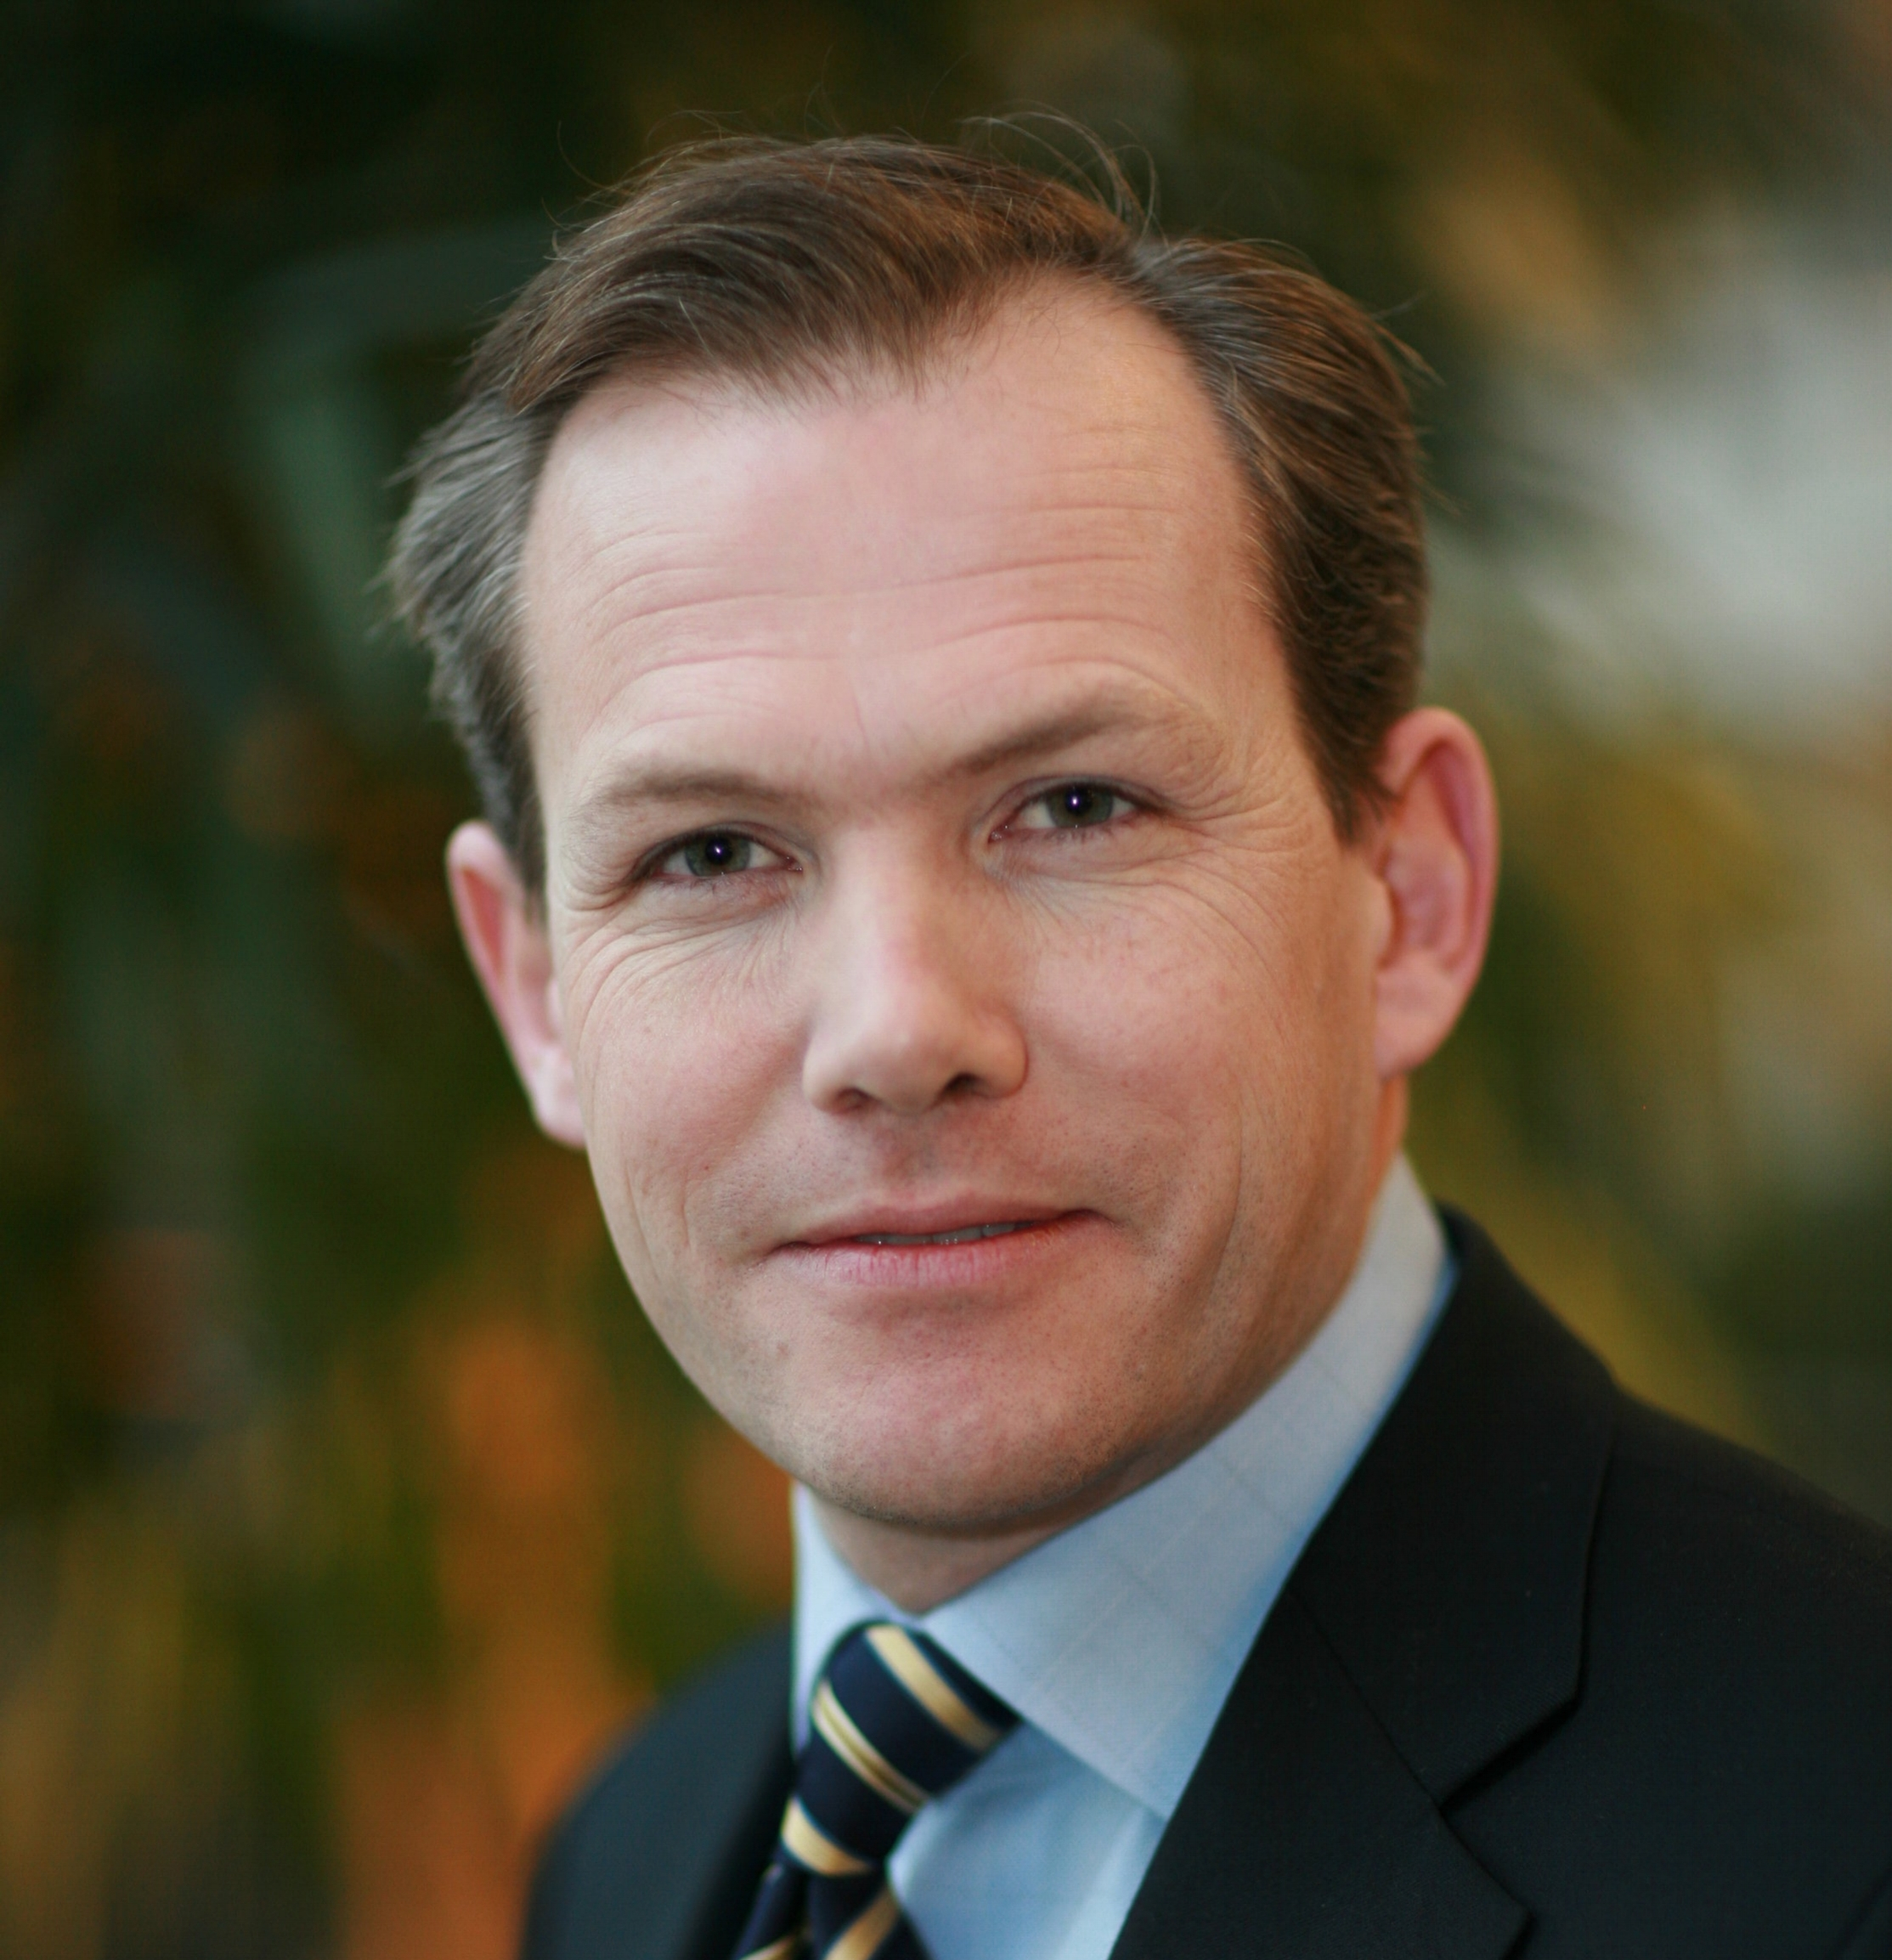 Charles Jameson (President)  Background of BD management roles in telecom and IoT (Telia, Speedy Tomato, Halebop, SiMobil, Alfa Laval). Senior Advisor at Analysys Mason. Currently leading Electrolux's IoT development in connected serviceability.